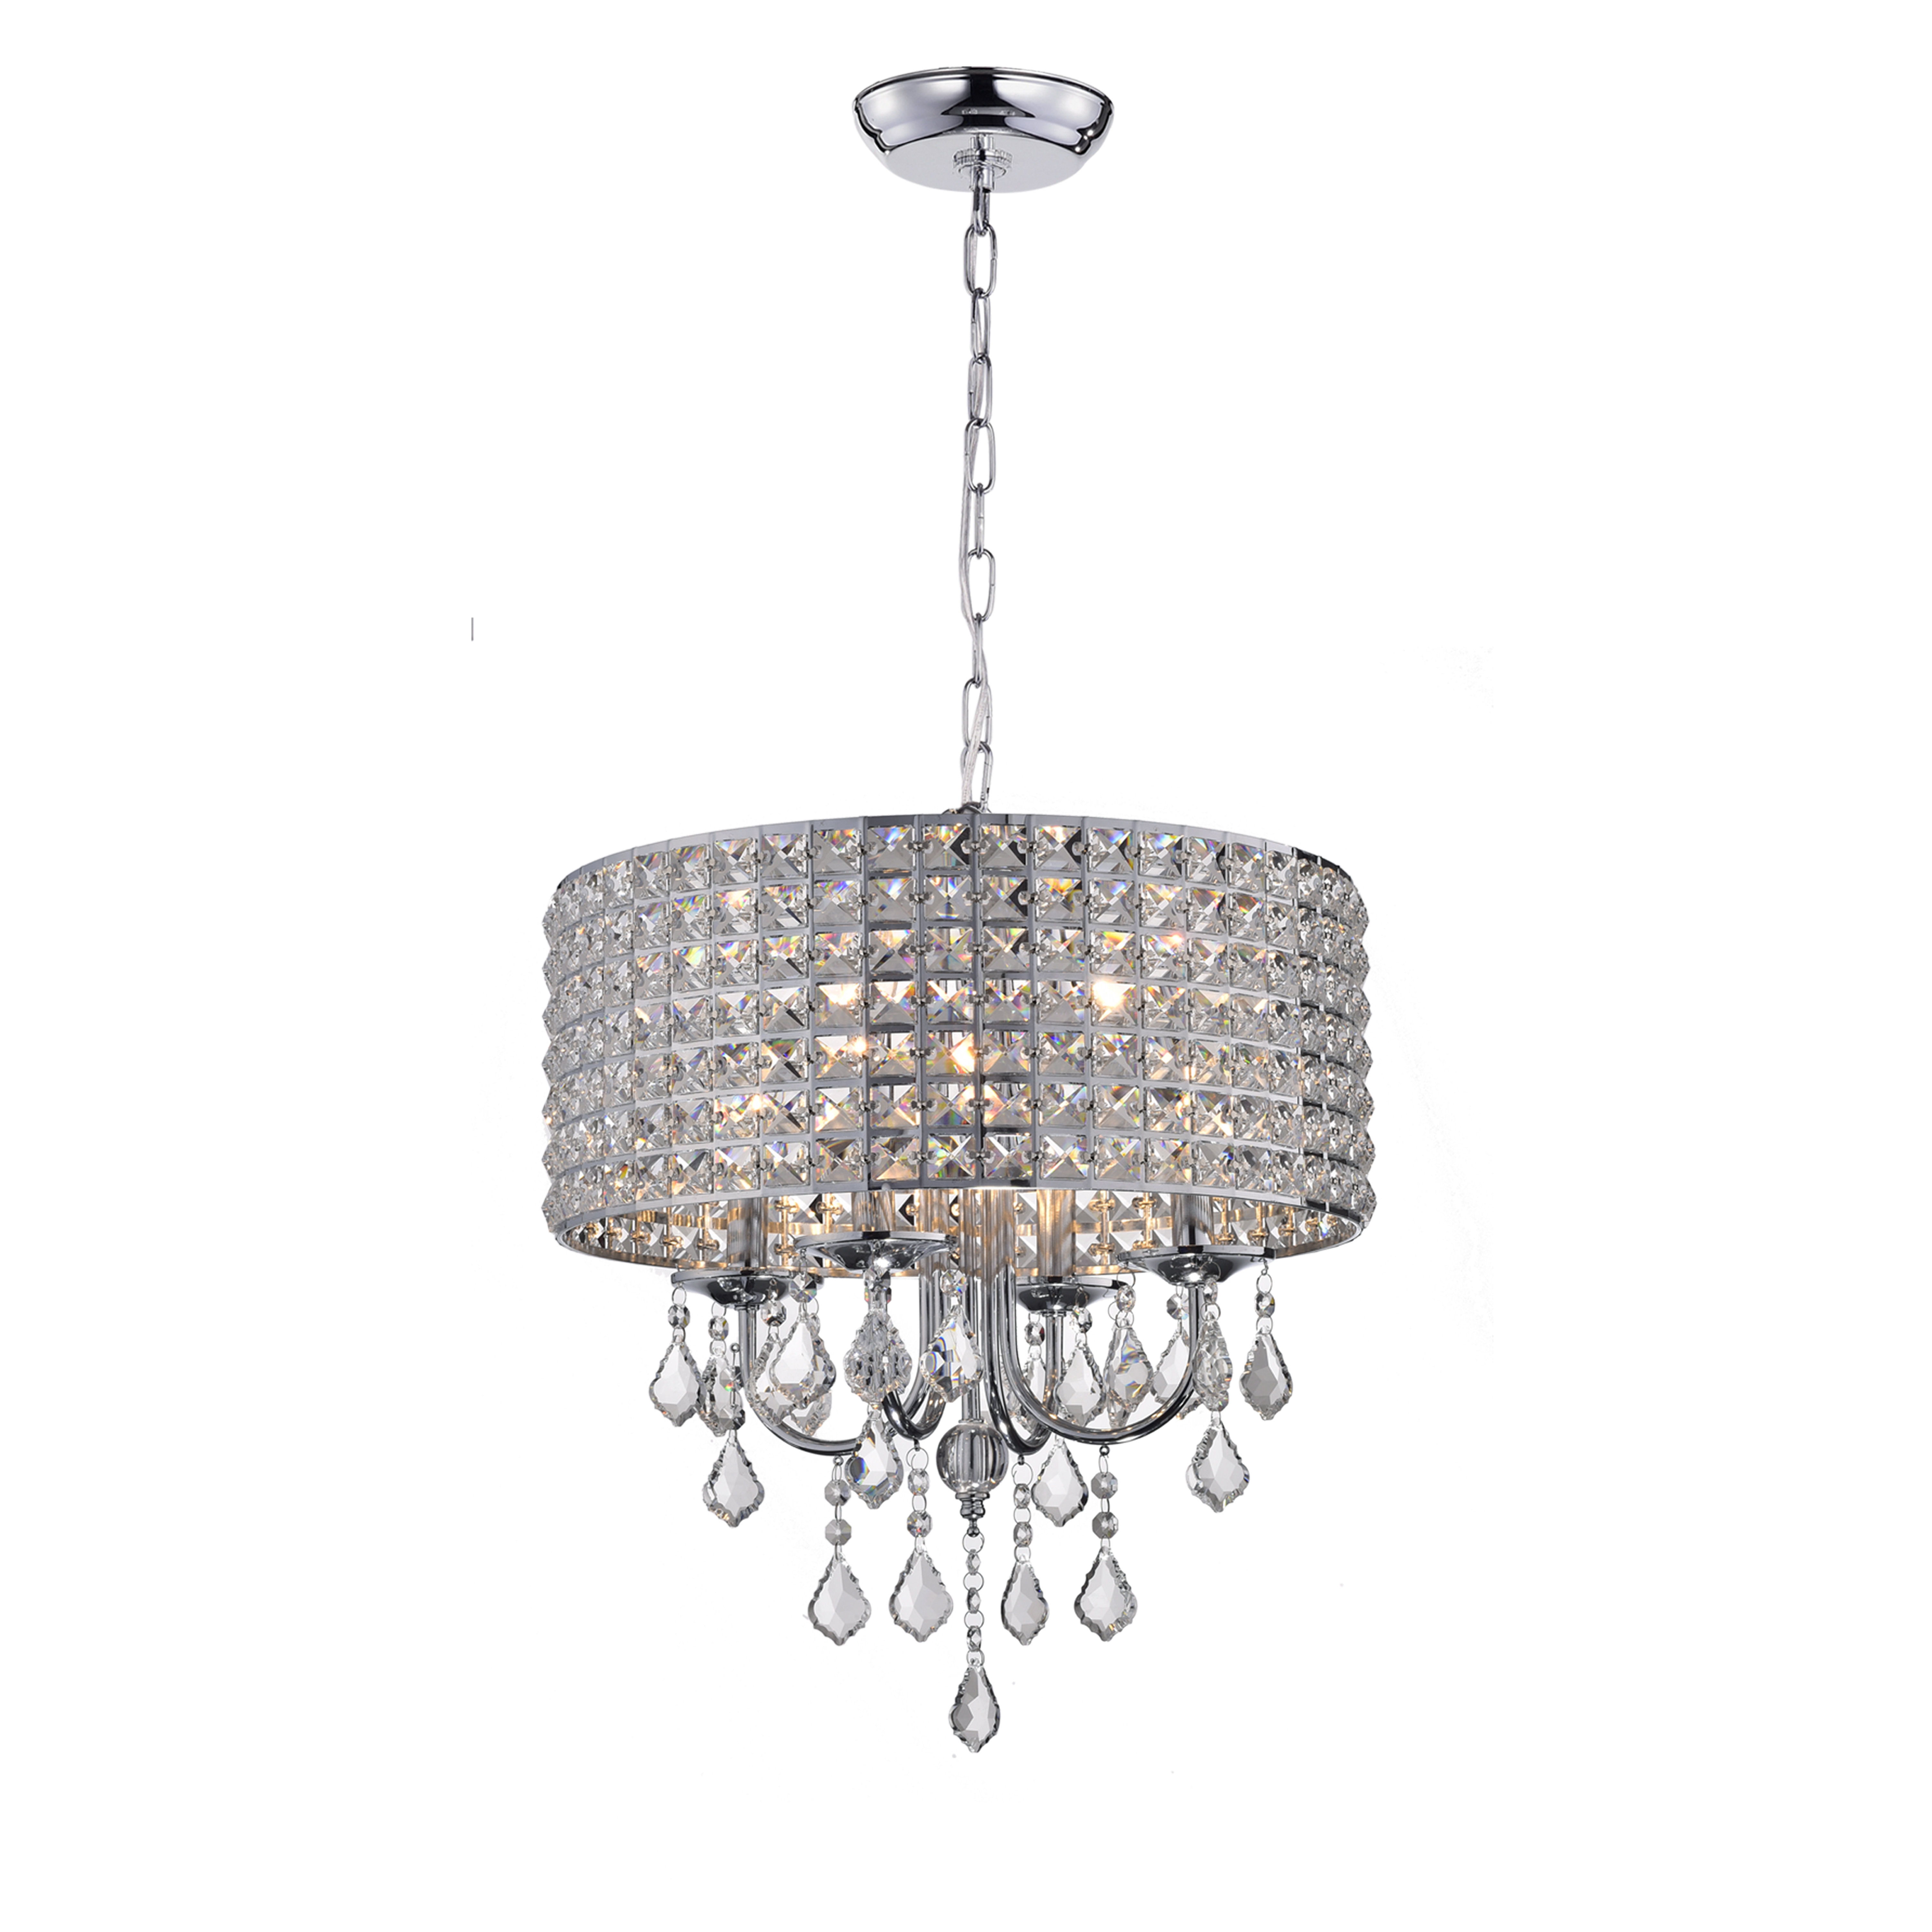 Gisselle 4 Light Drum Chandeliers With Regard To 2020 Albano 4 Light Crystal Chandelier (Gallery 13 of 20)